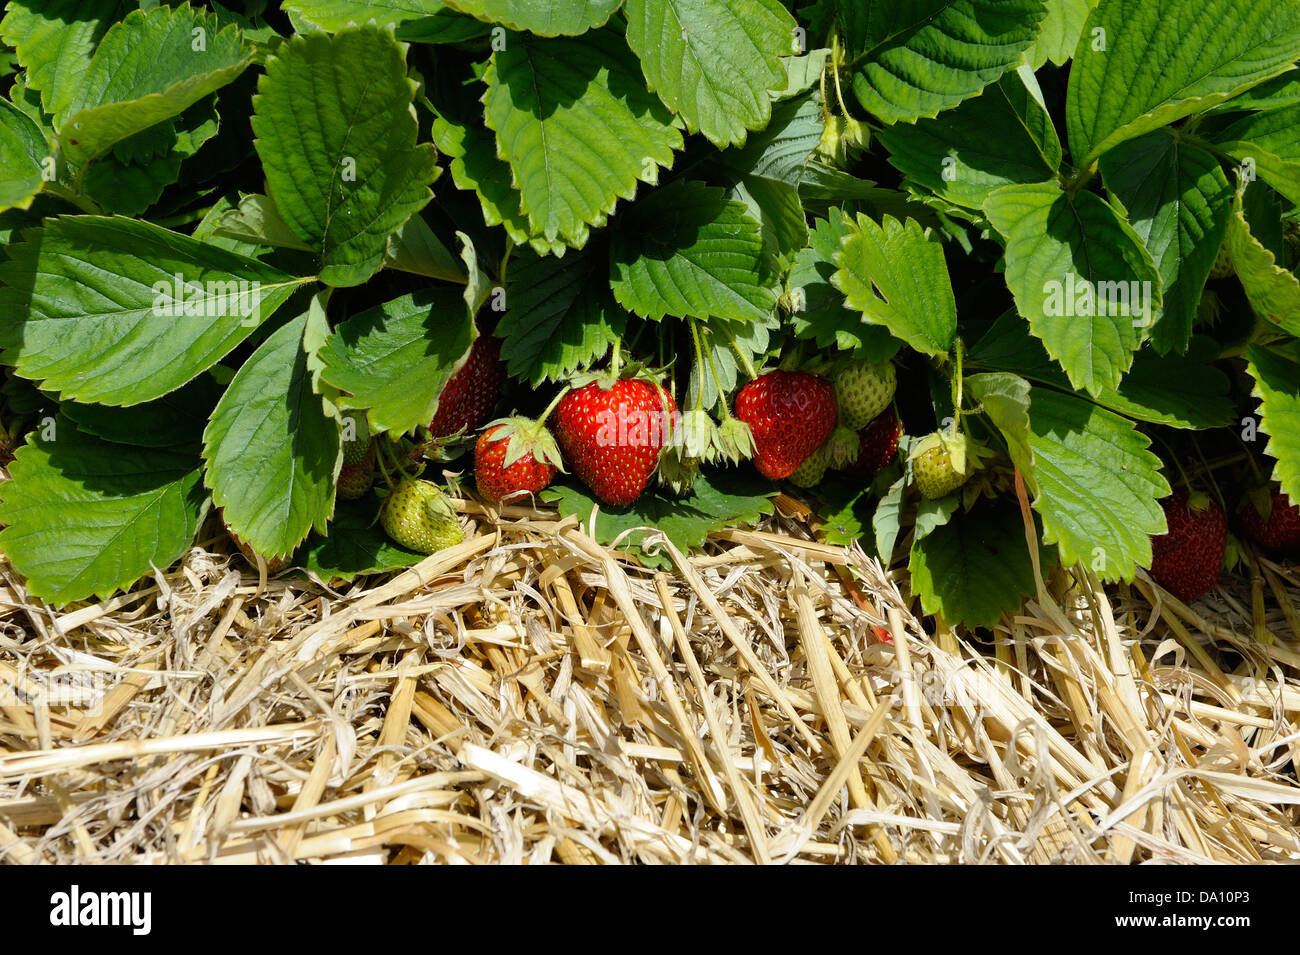 Fresh new strawberry plants being cultivated on a bed of straw ...